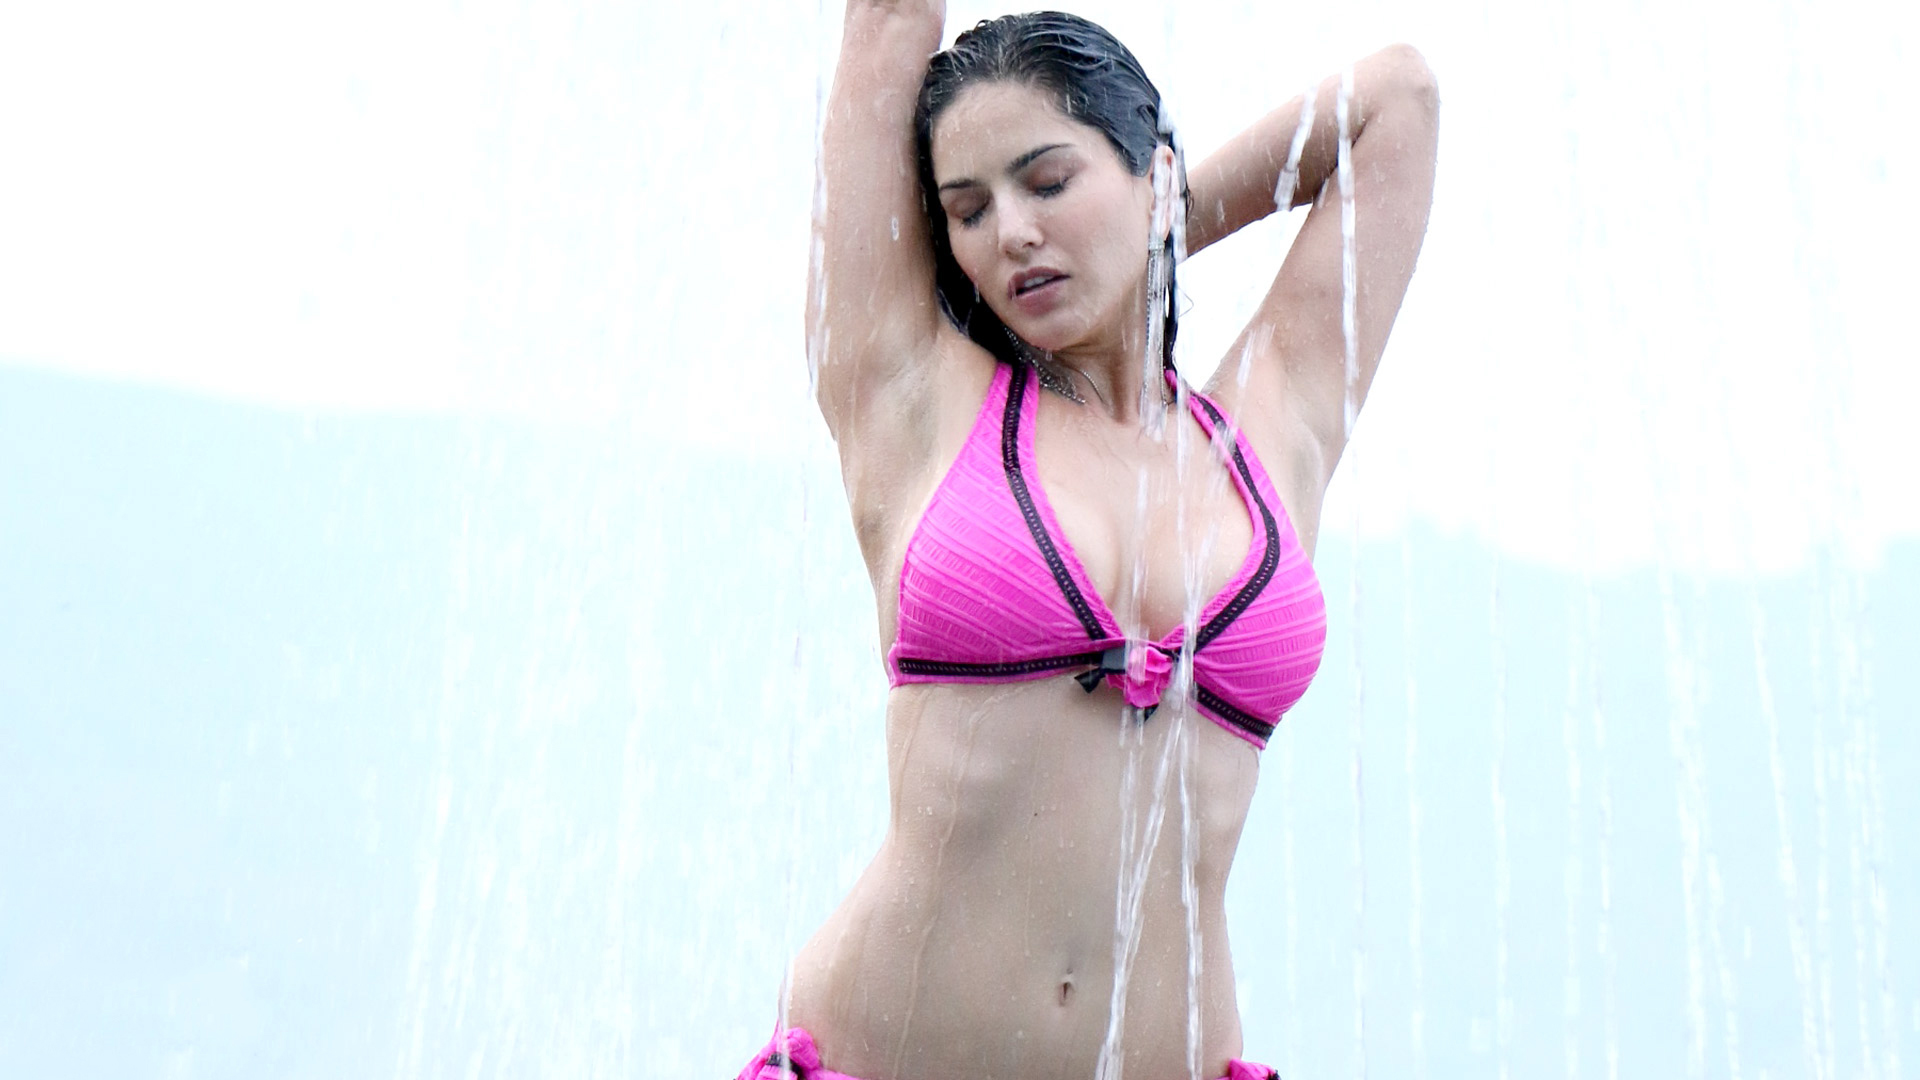 Sunny Leone Hd Wallpapers 1920x1080, Sunny Leone HD High Quality